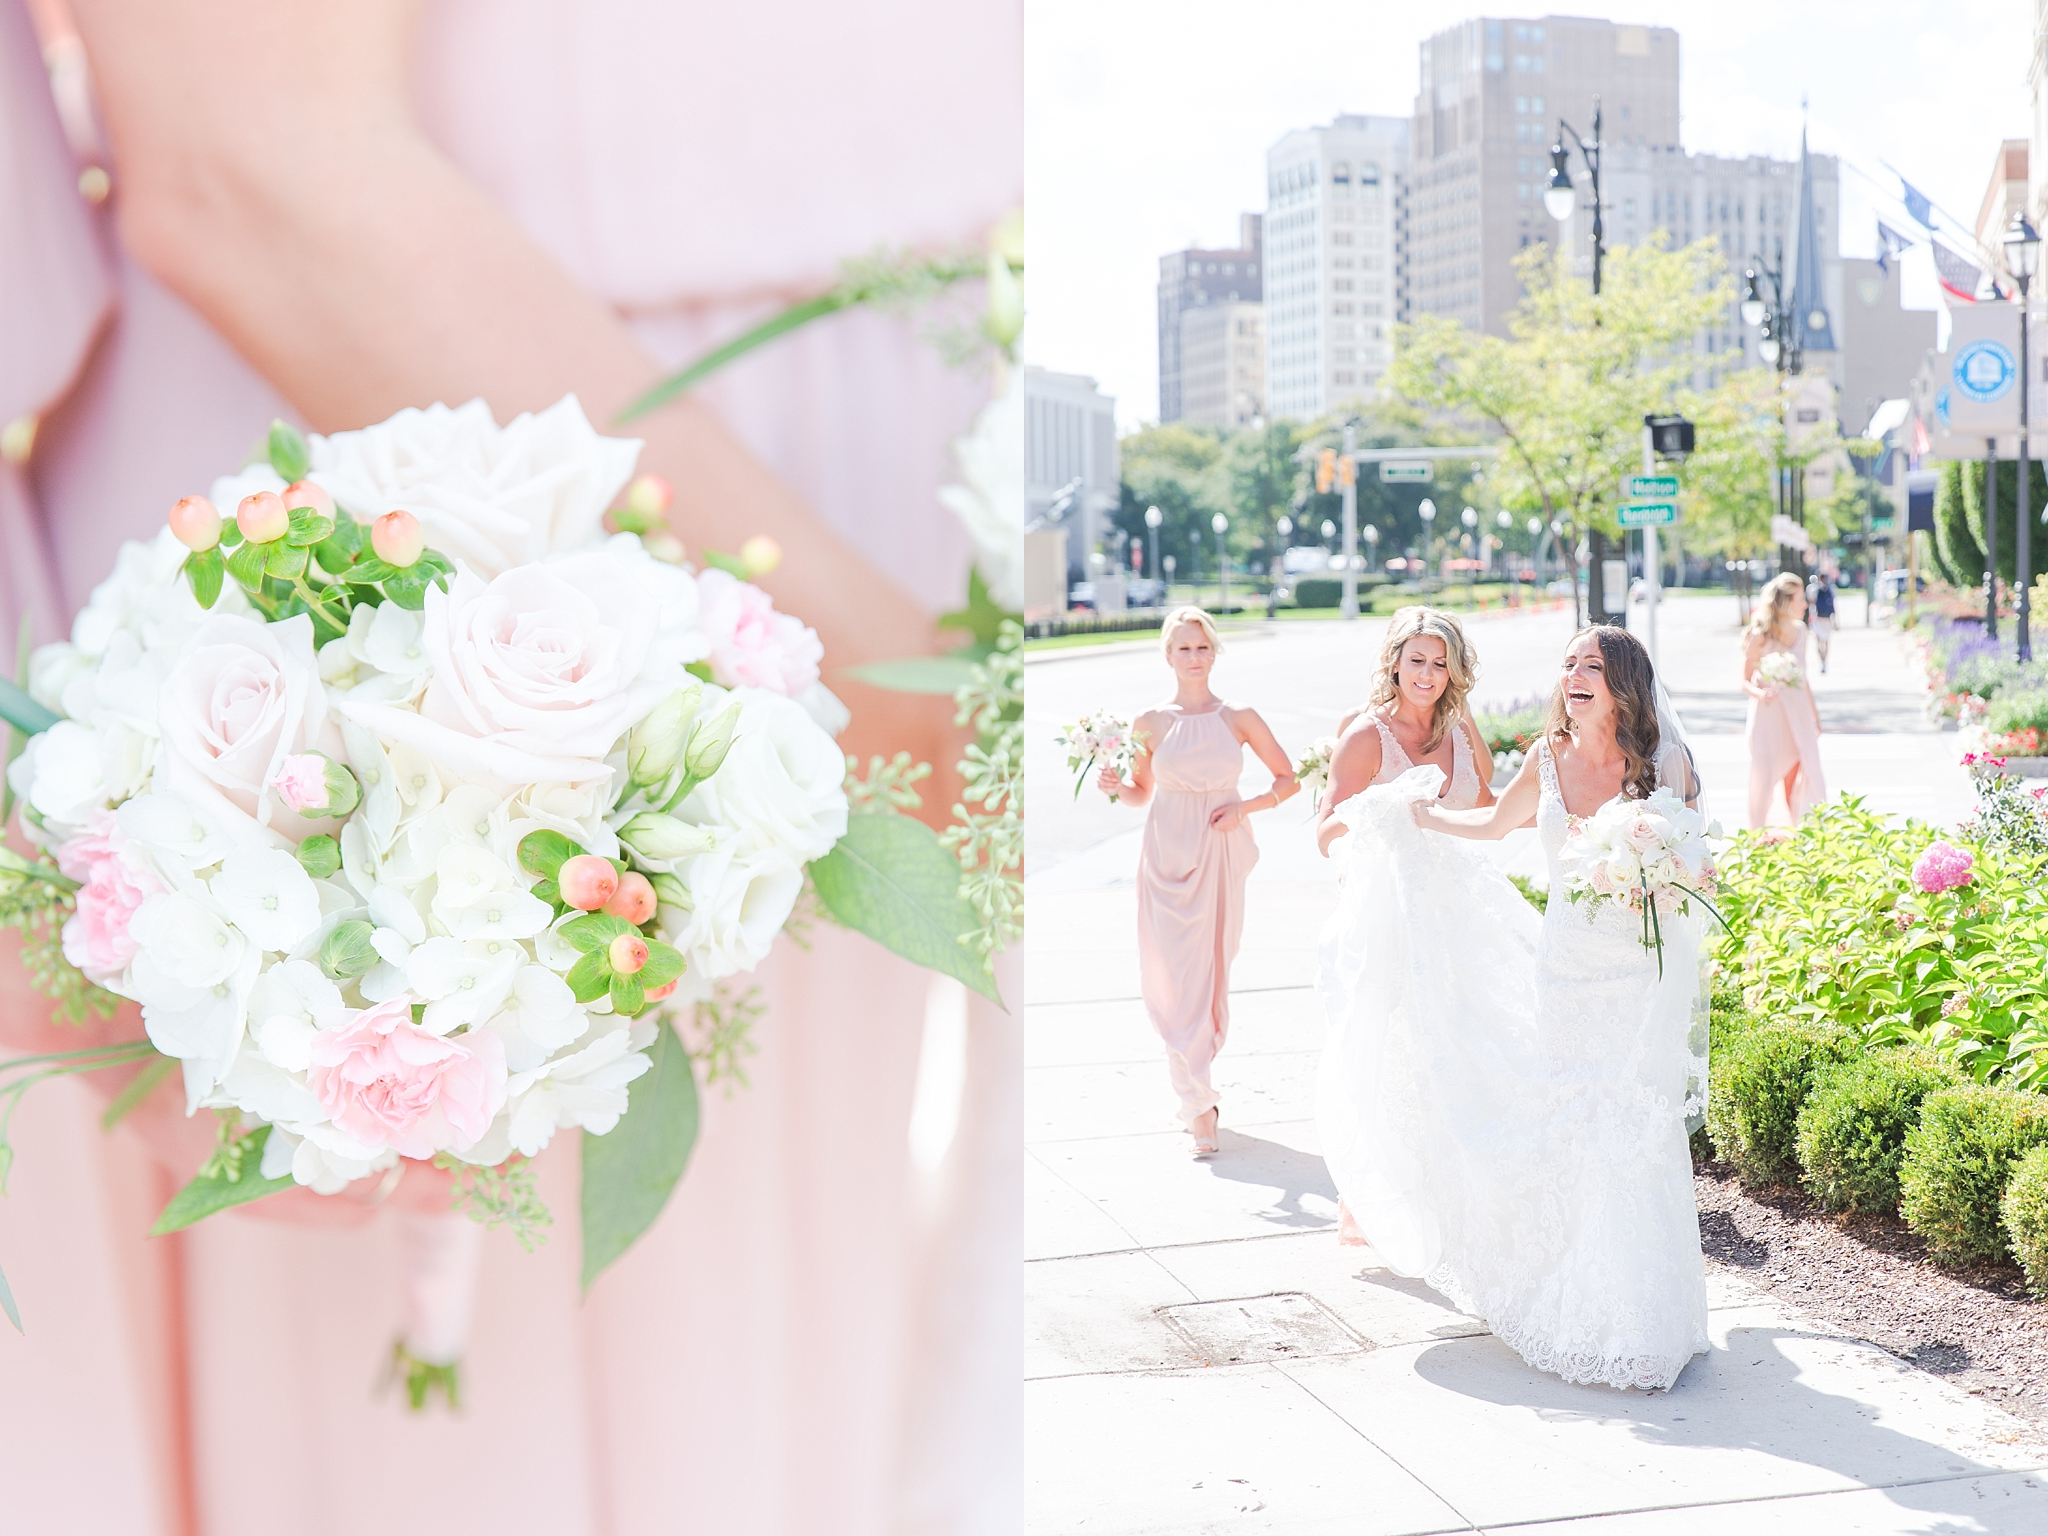 playful-blush-navy-wedding-photos-the-detroit-athletic-club-in-detroit-michigan-by-courtney-carolyn-photography_0037.jpg